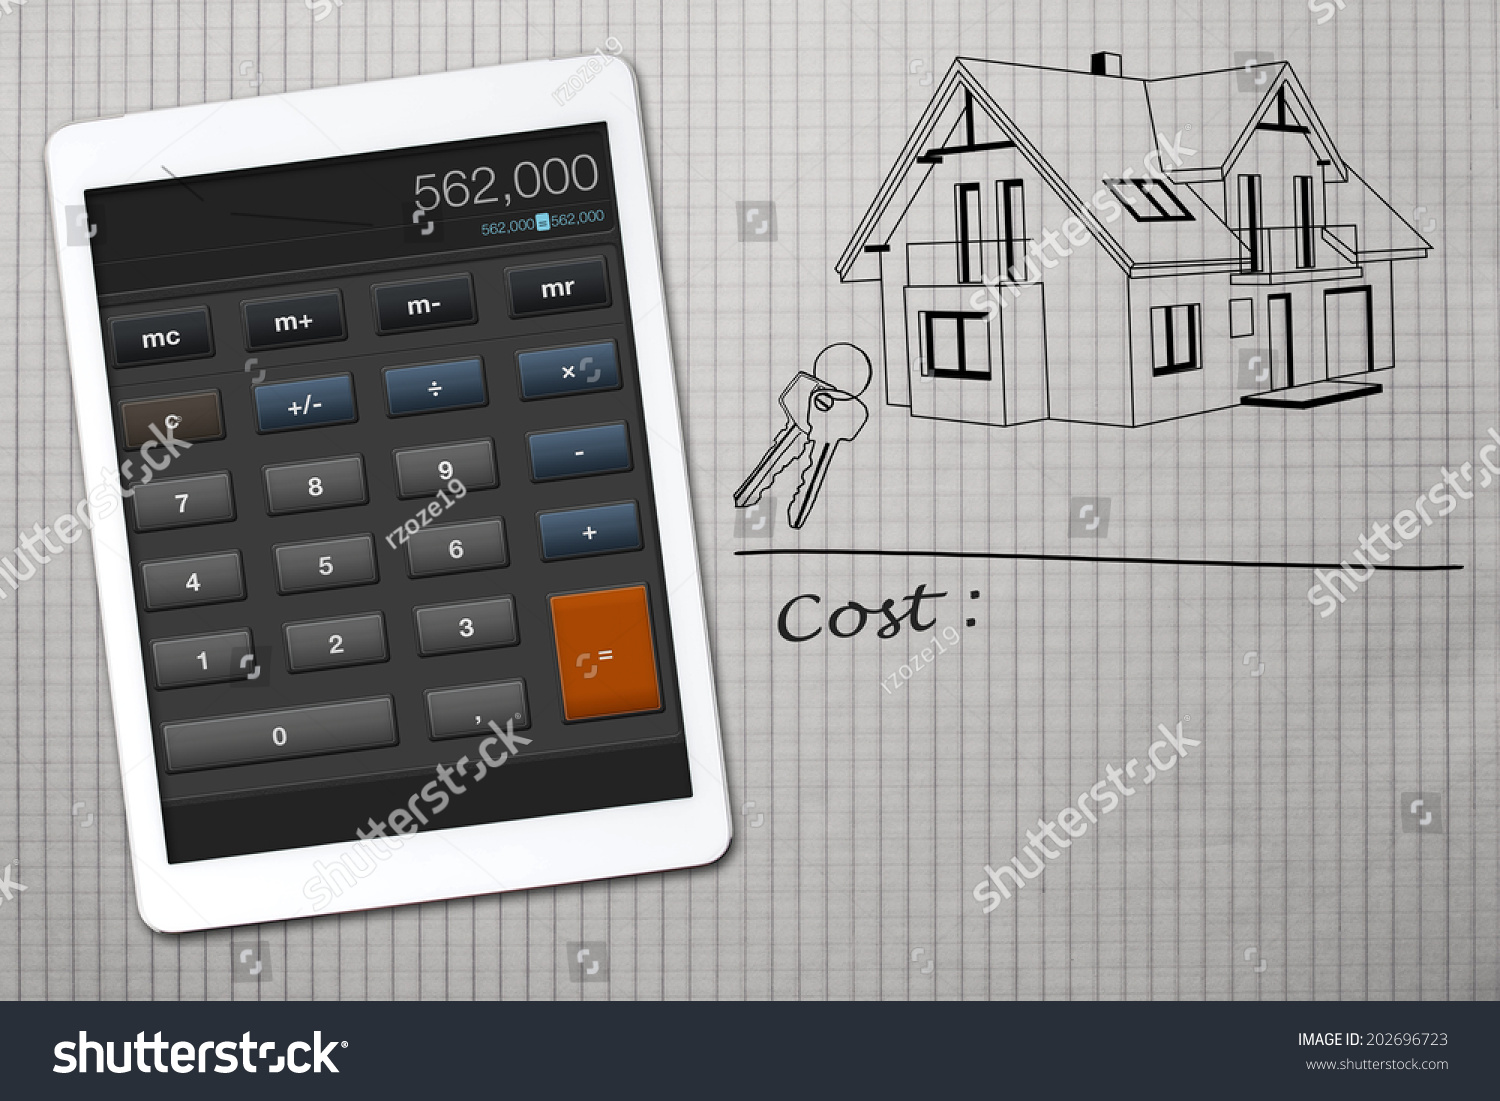 Home construction cost calculator stock photo 202696723 for Building cost calculator